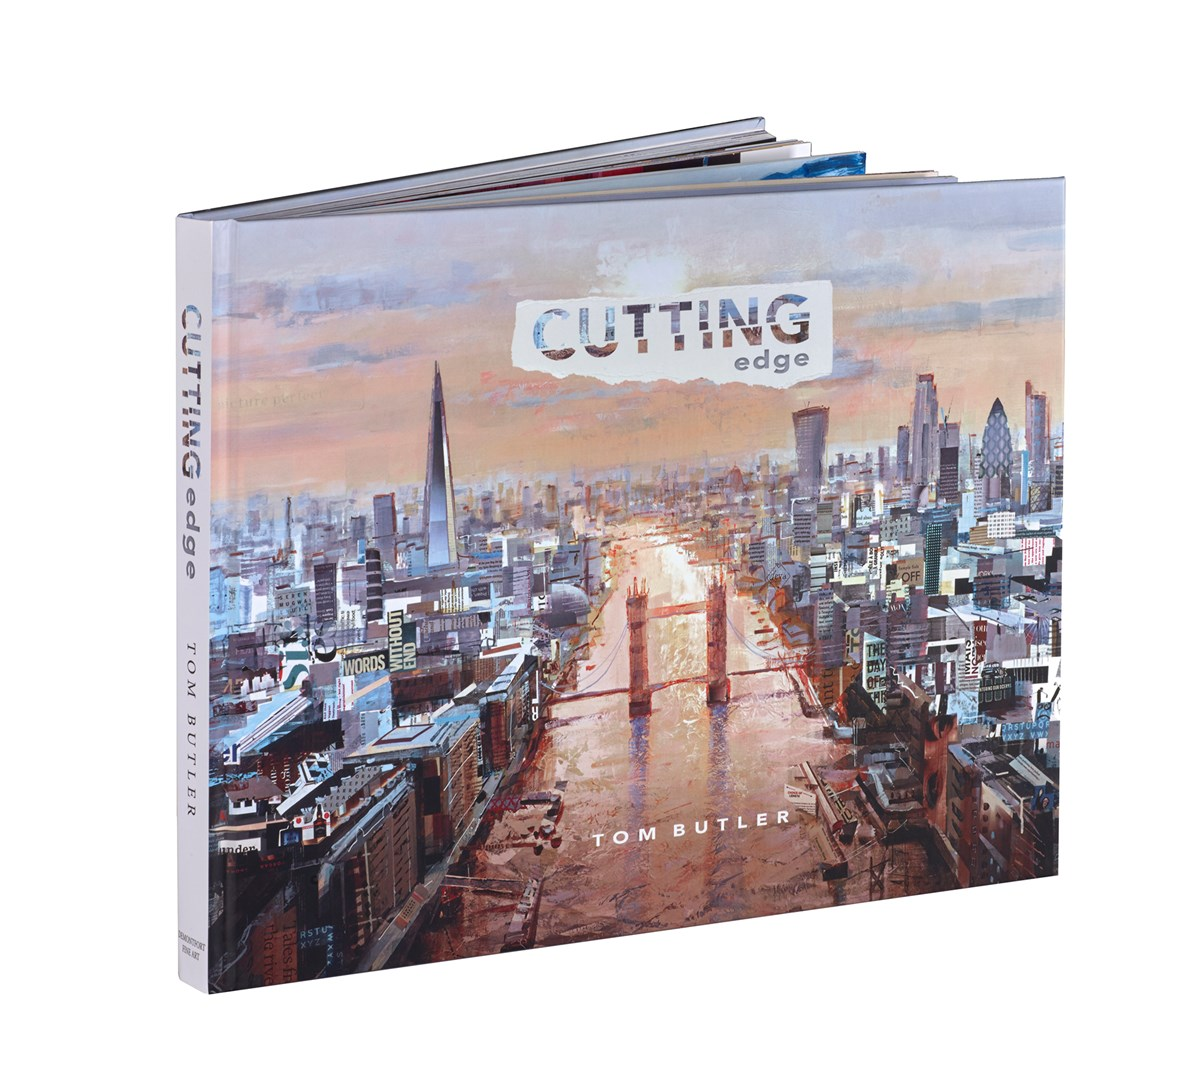 Cutting Edge by Tom Butler